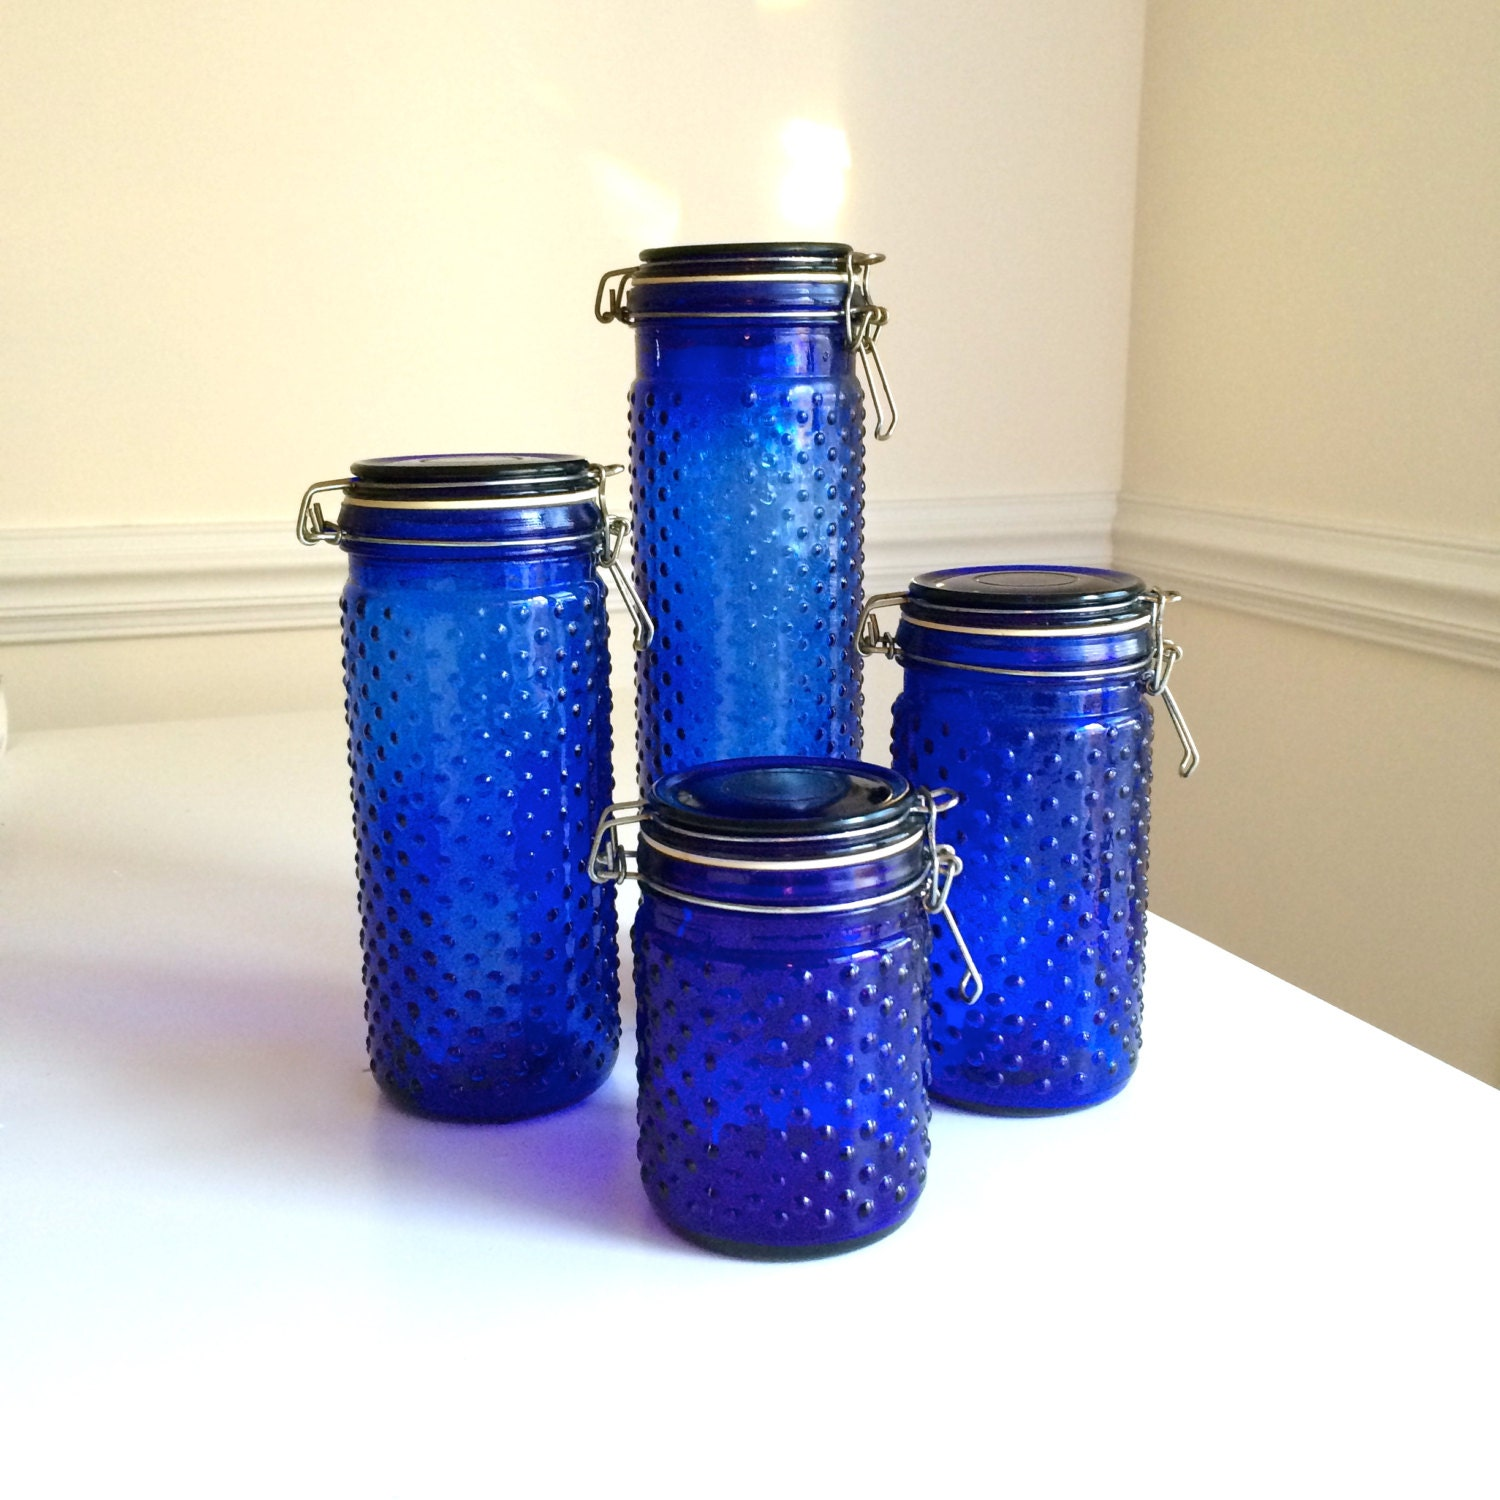 Cobalt blue kitchen canisters 28 images cobalt blue glass fruit canister set 4 pcs elements - Blue glass kitchen canisters ...